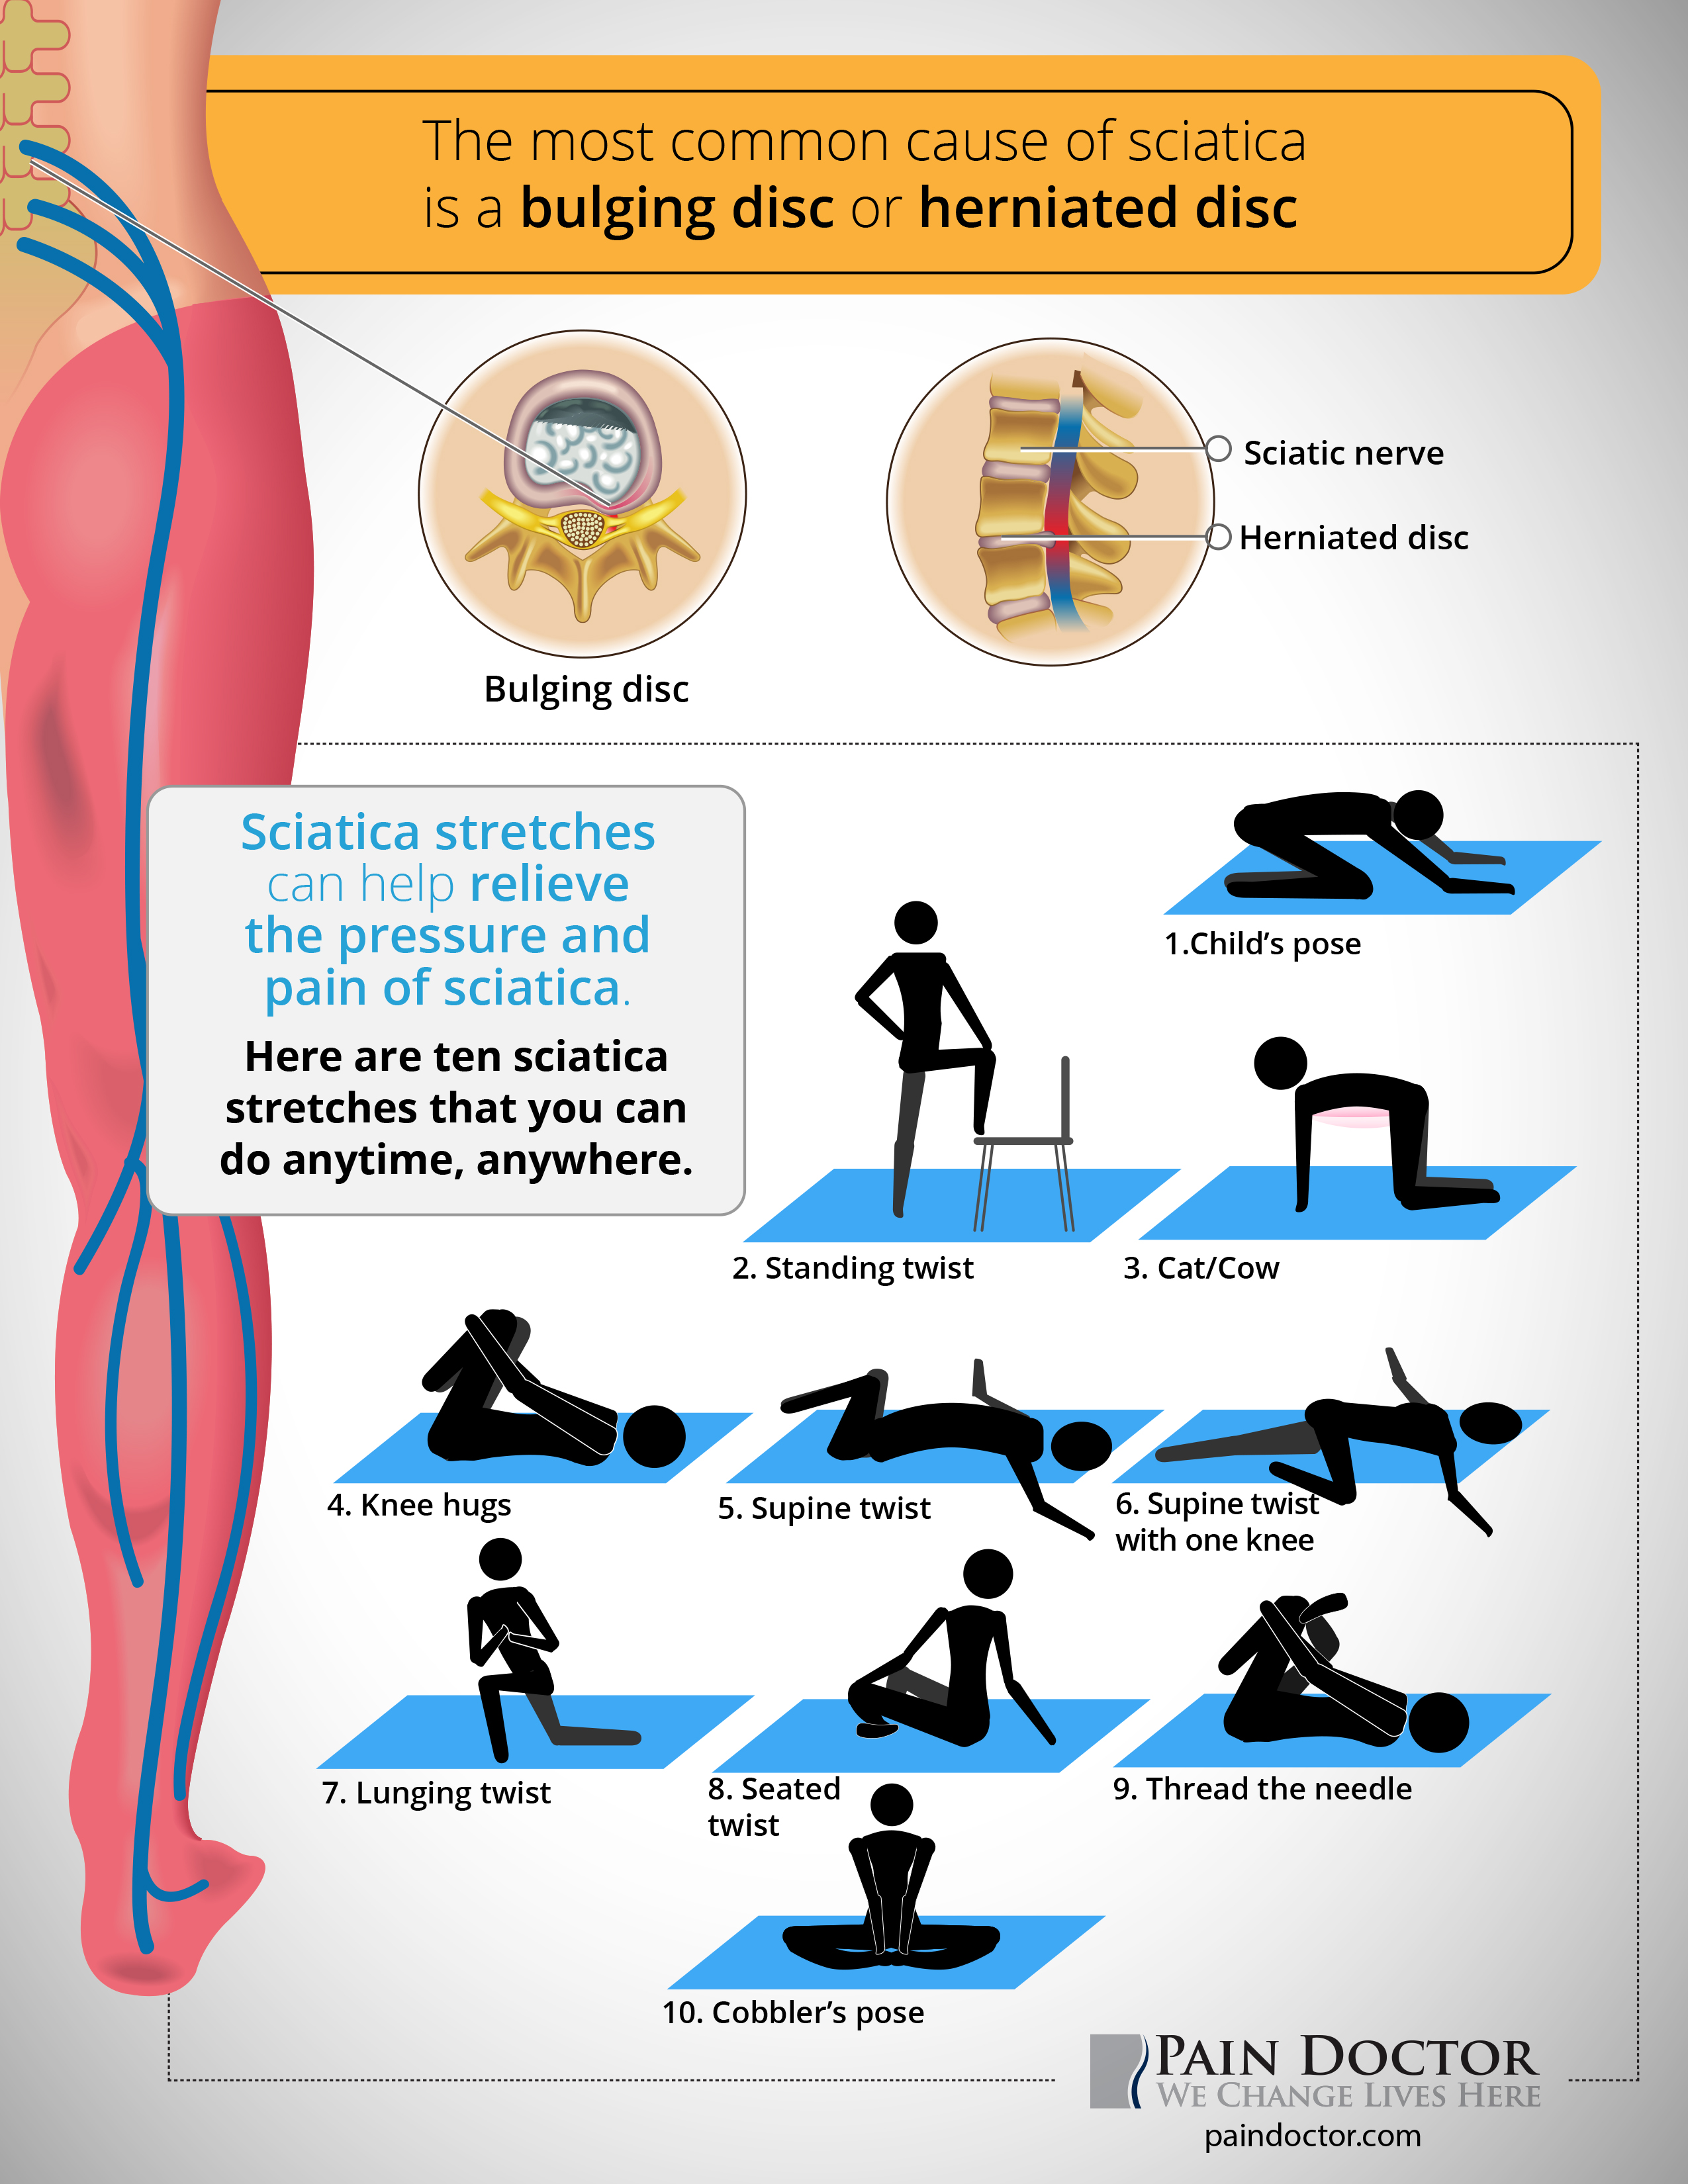 10 Sciatica Stretches You Can Do Anytime Anywhere